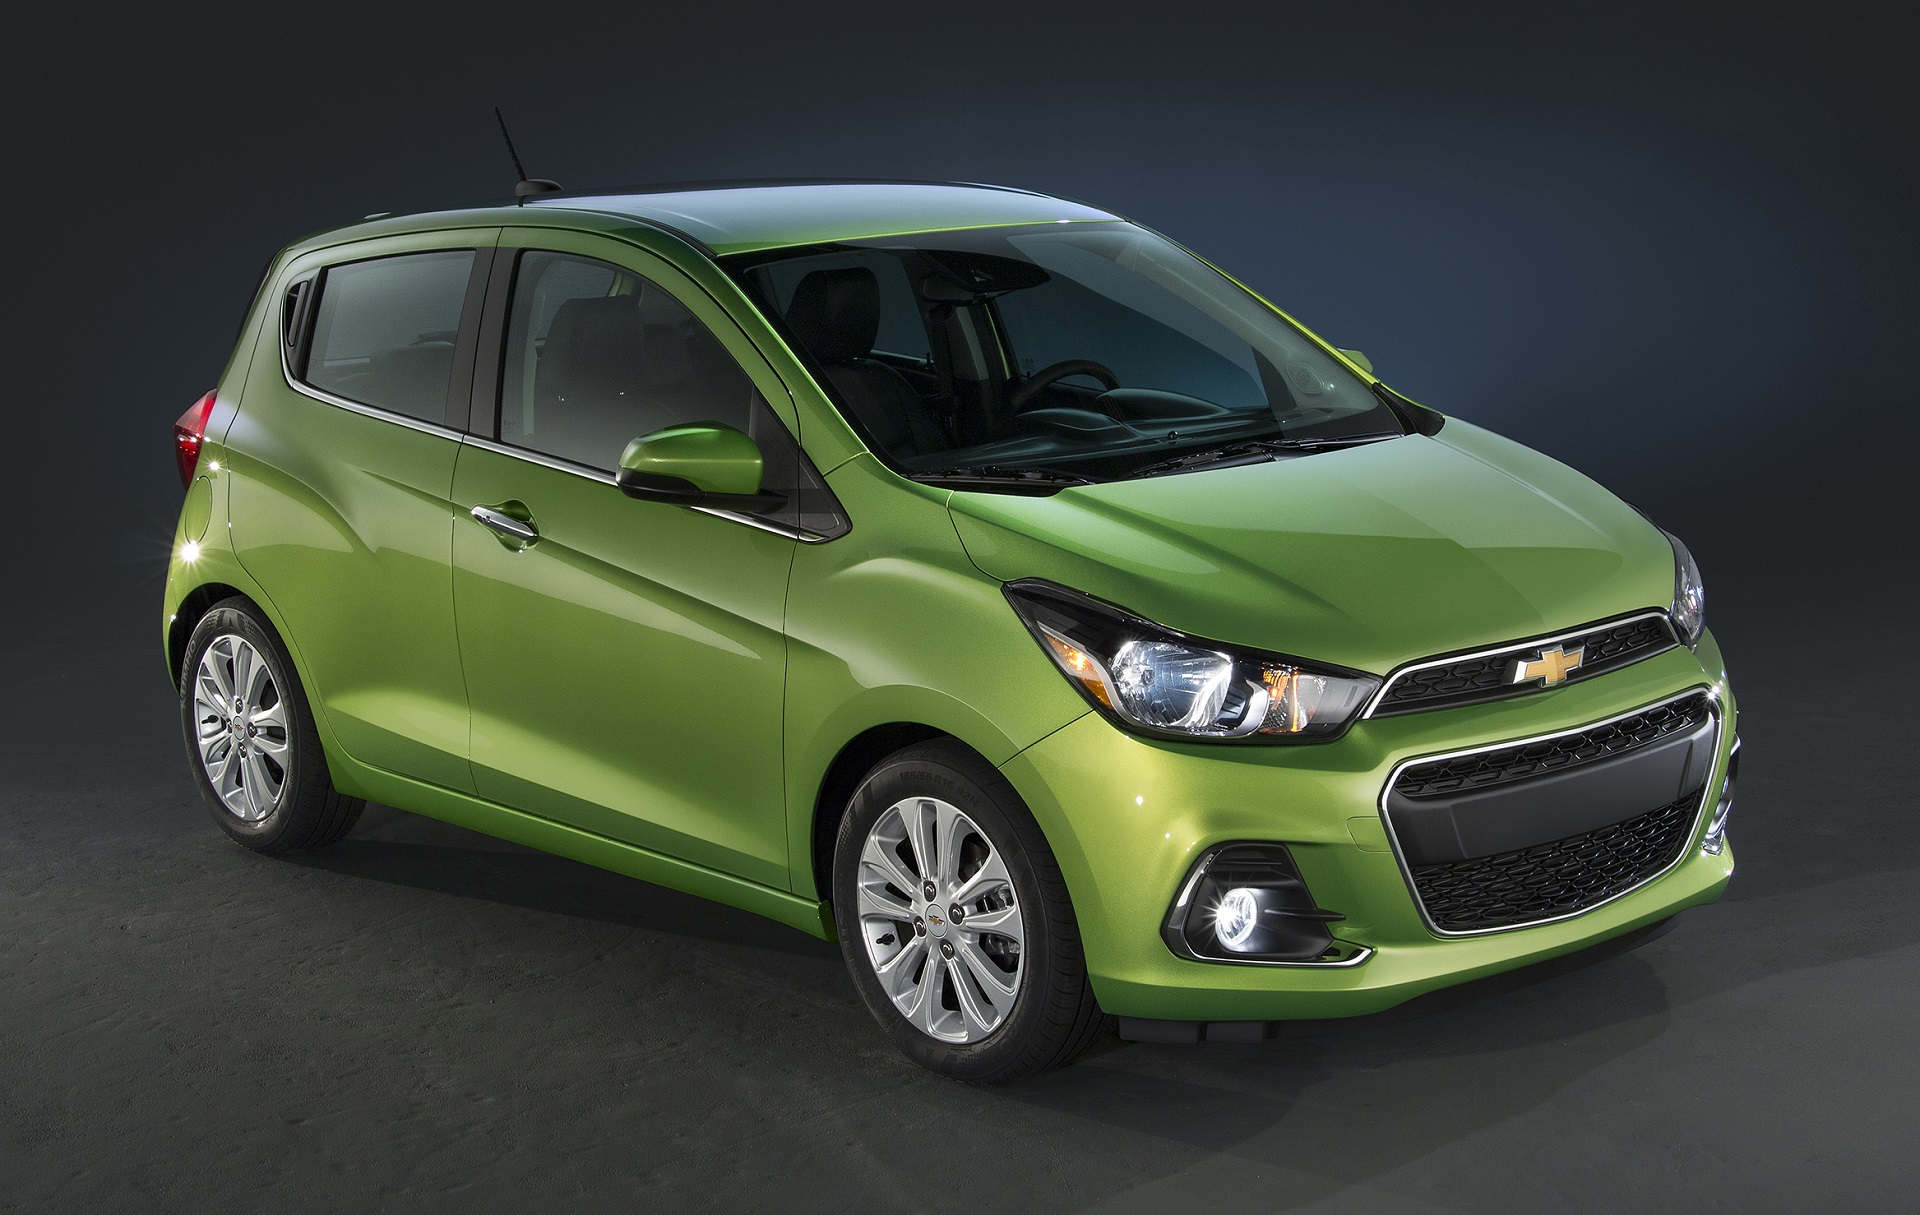 2018 Chevrolet Spark Chevy Review Ratings Specs Prices And Photos The Car Connection